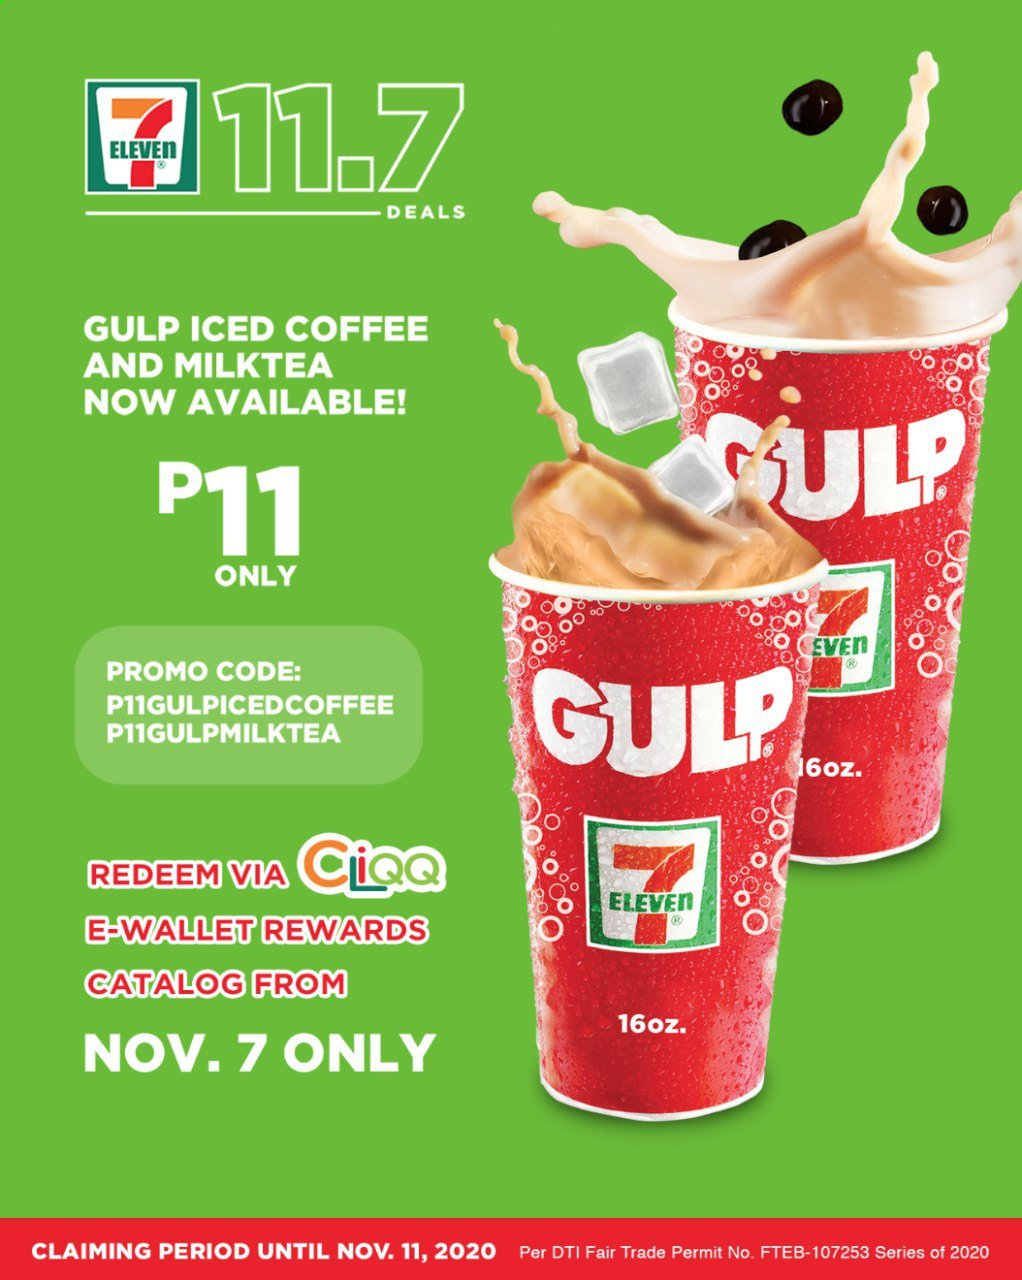 7 Eleven offer  - 7.11.2020 - 7.11.2020 - Sales products - gul, wallet, iced coffee. Page 1.